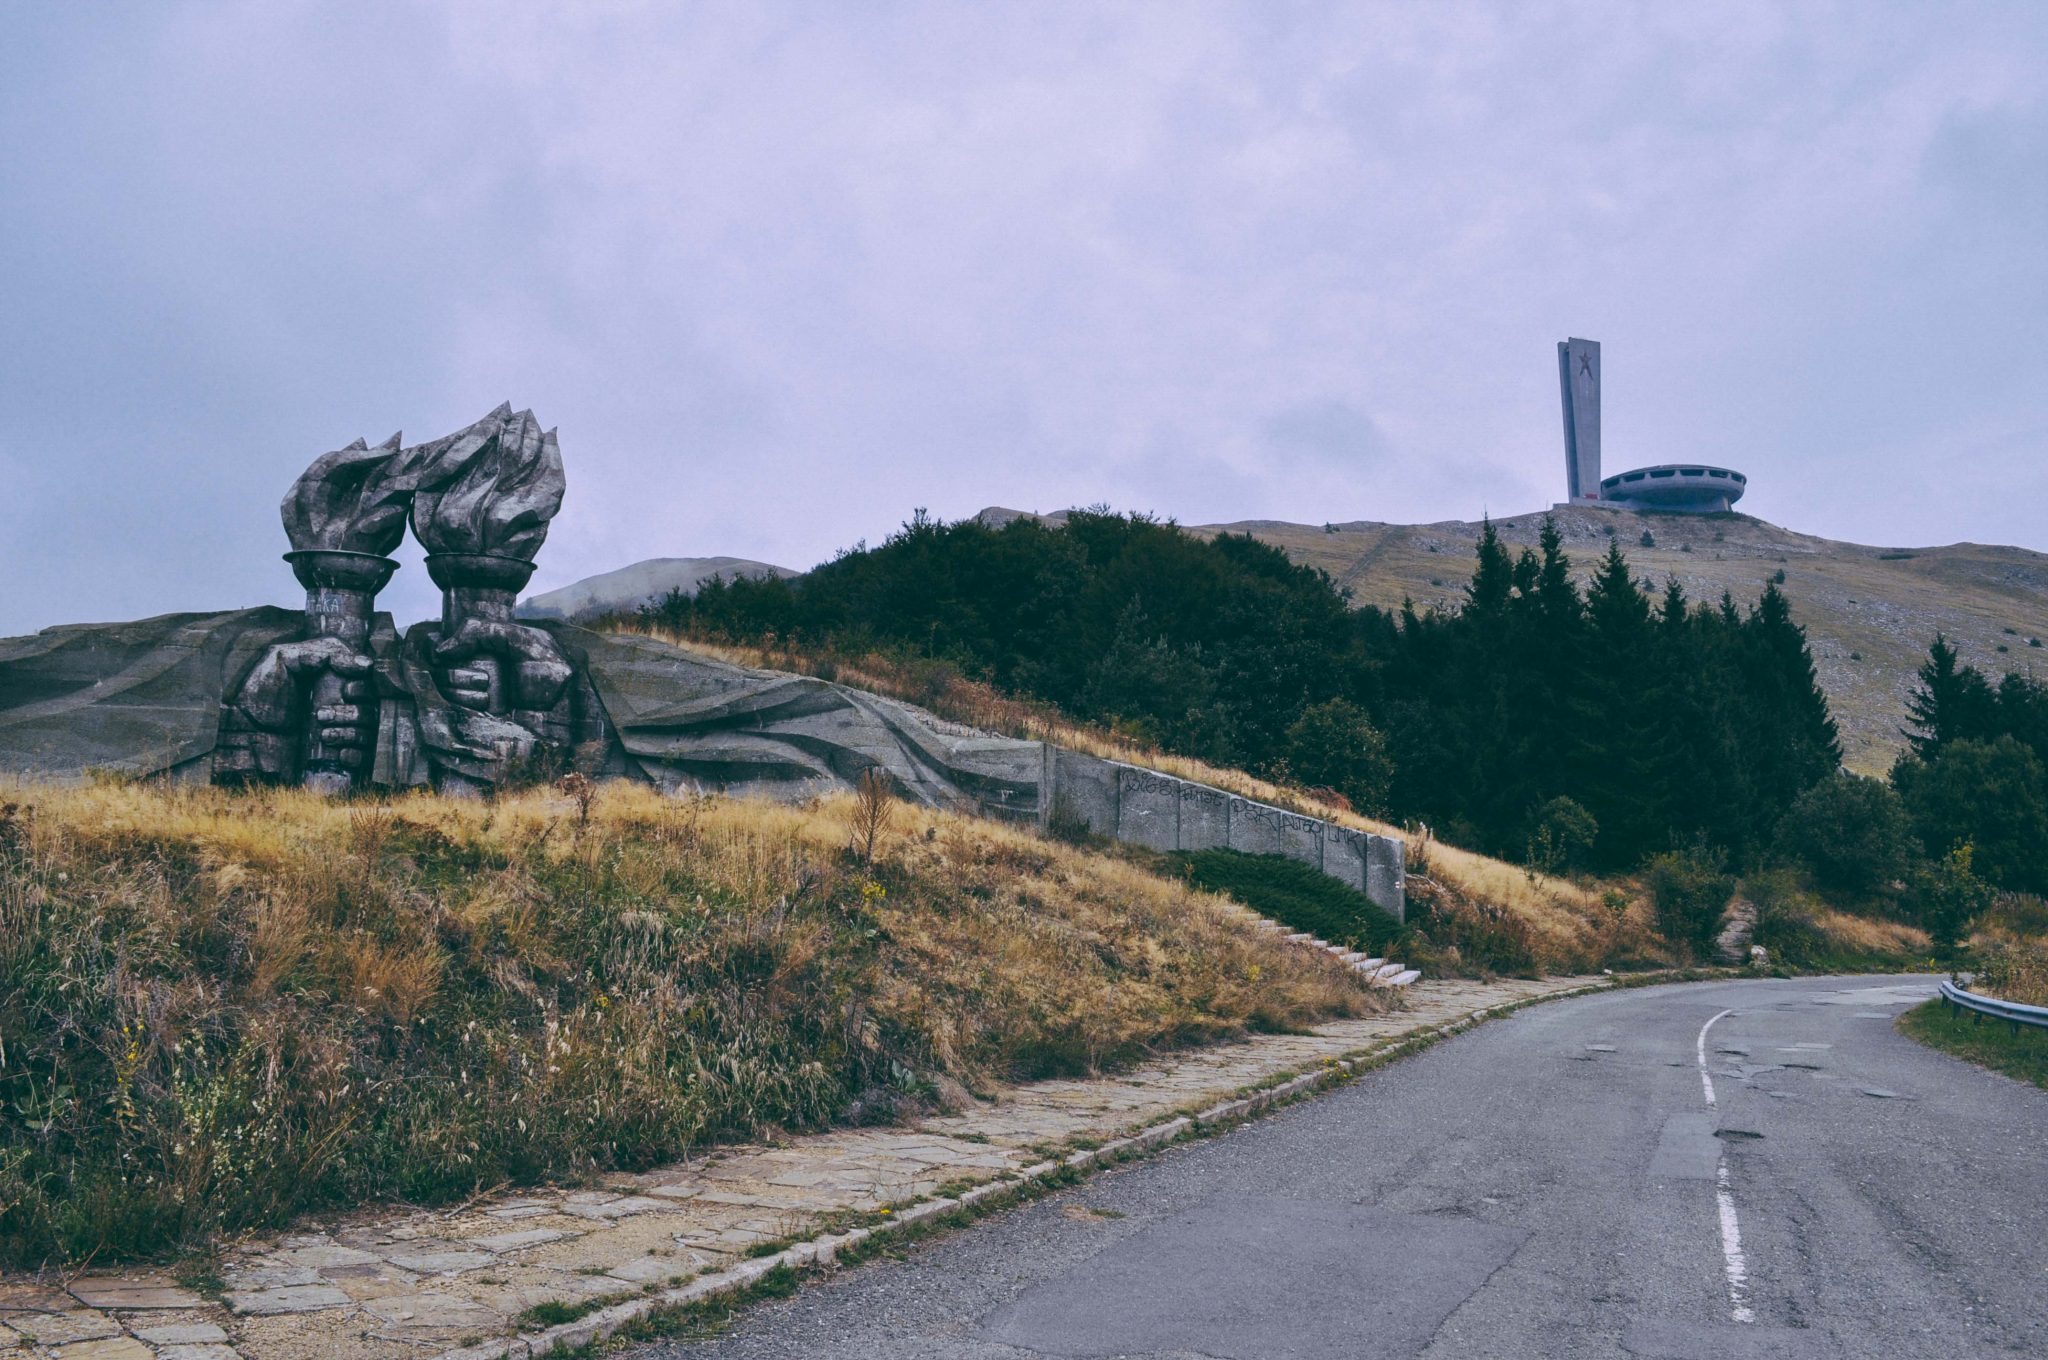 Interesting communist monument near Kazanlak